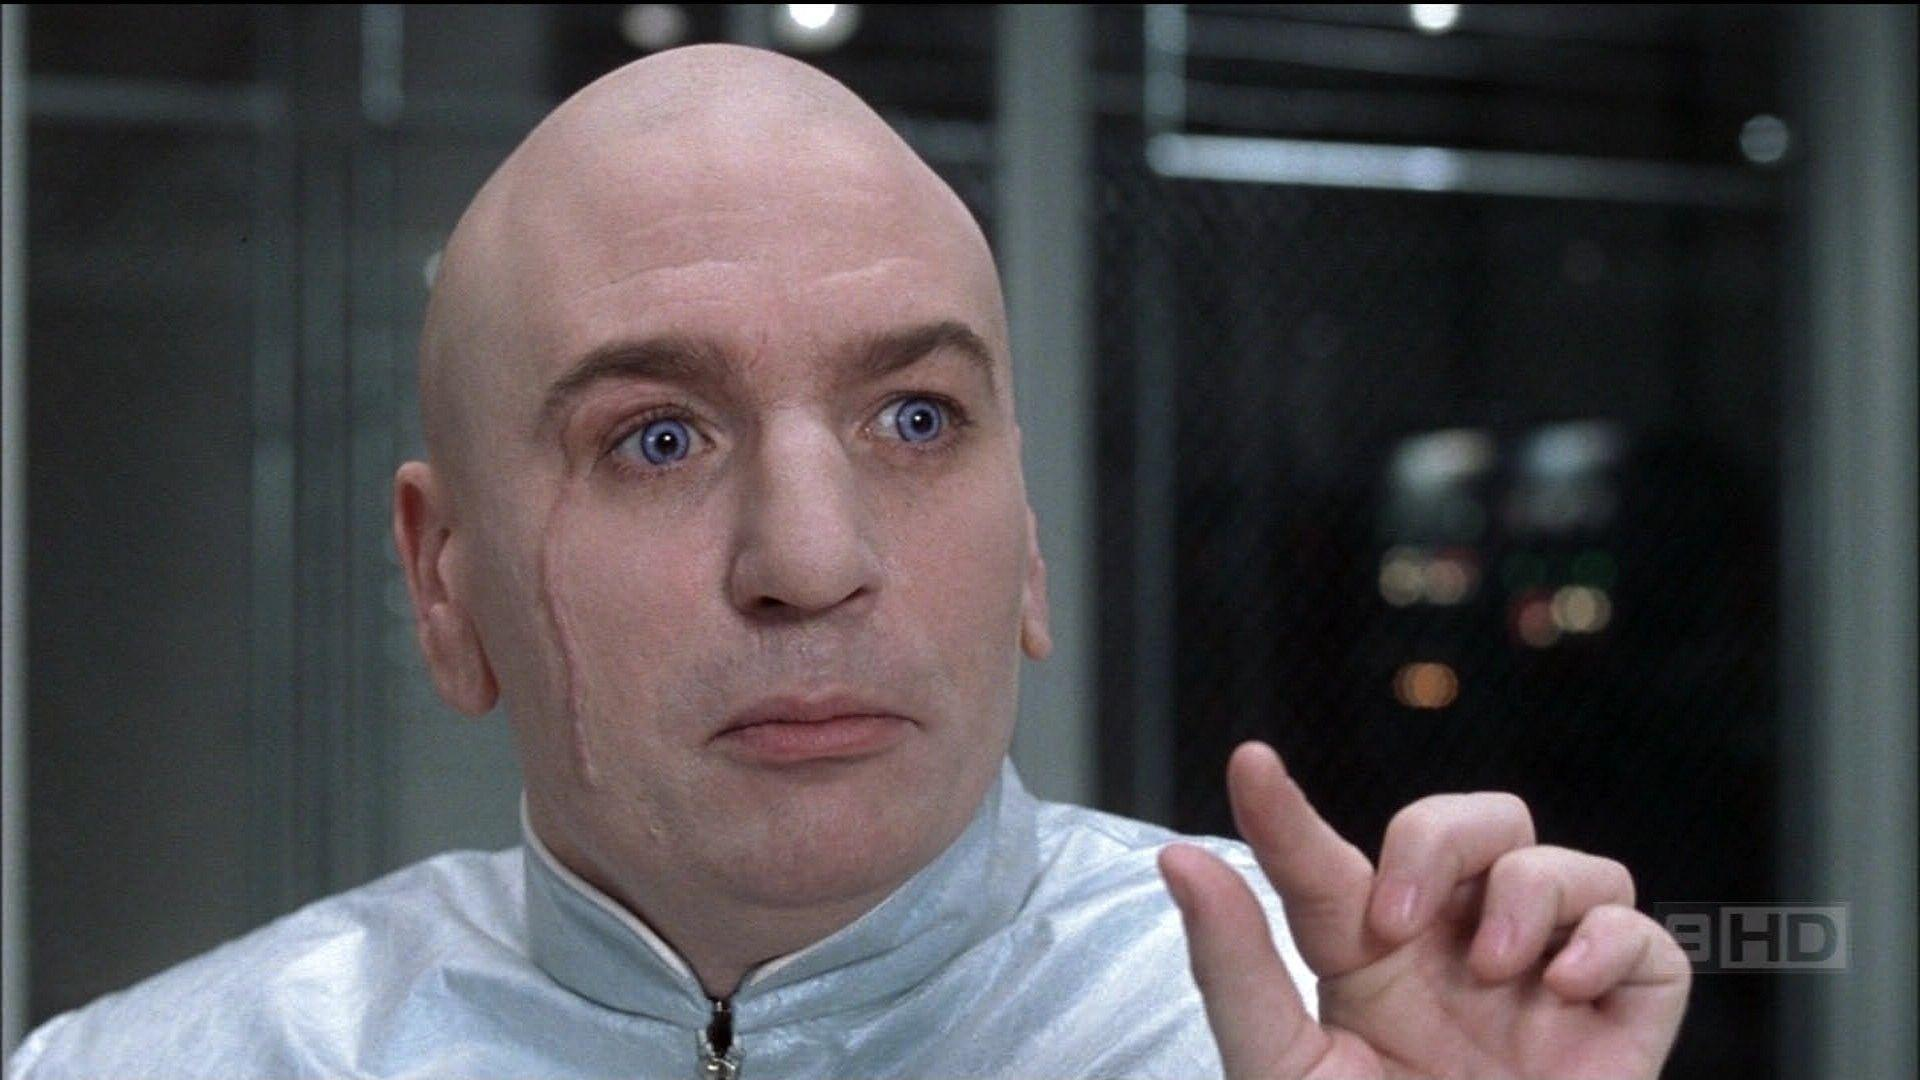 austin powers mike myers dr evil 1920x1080 wallpapers High Quality